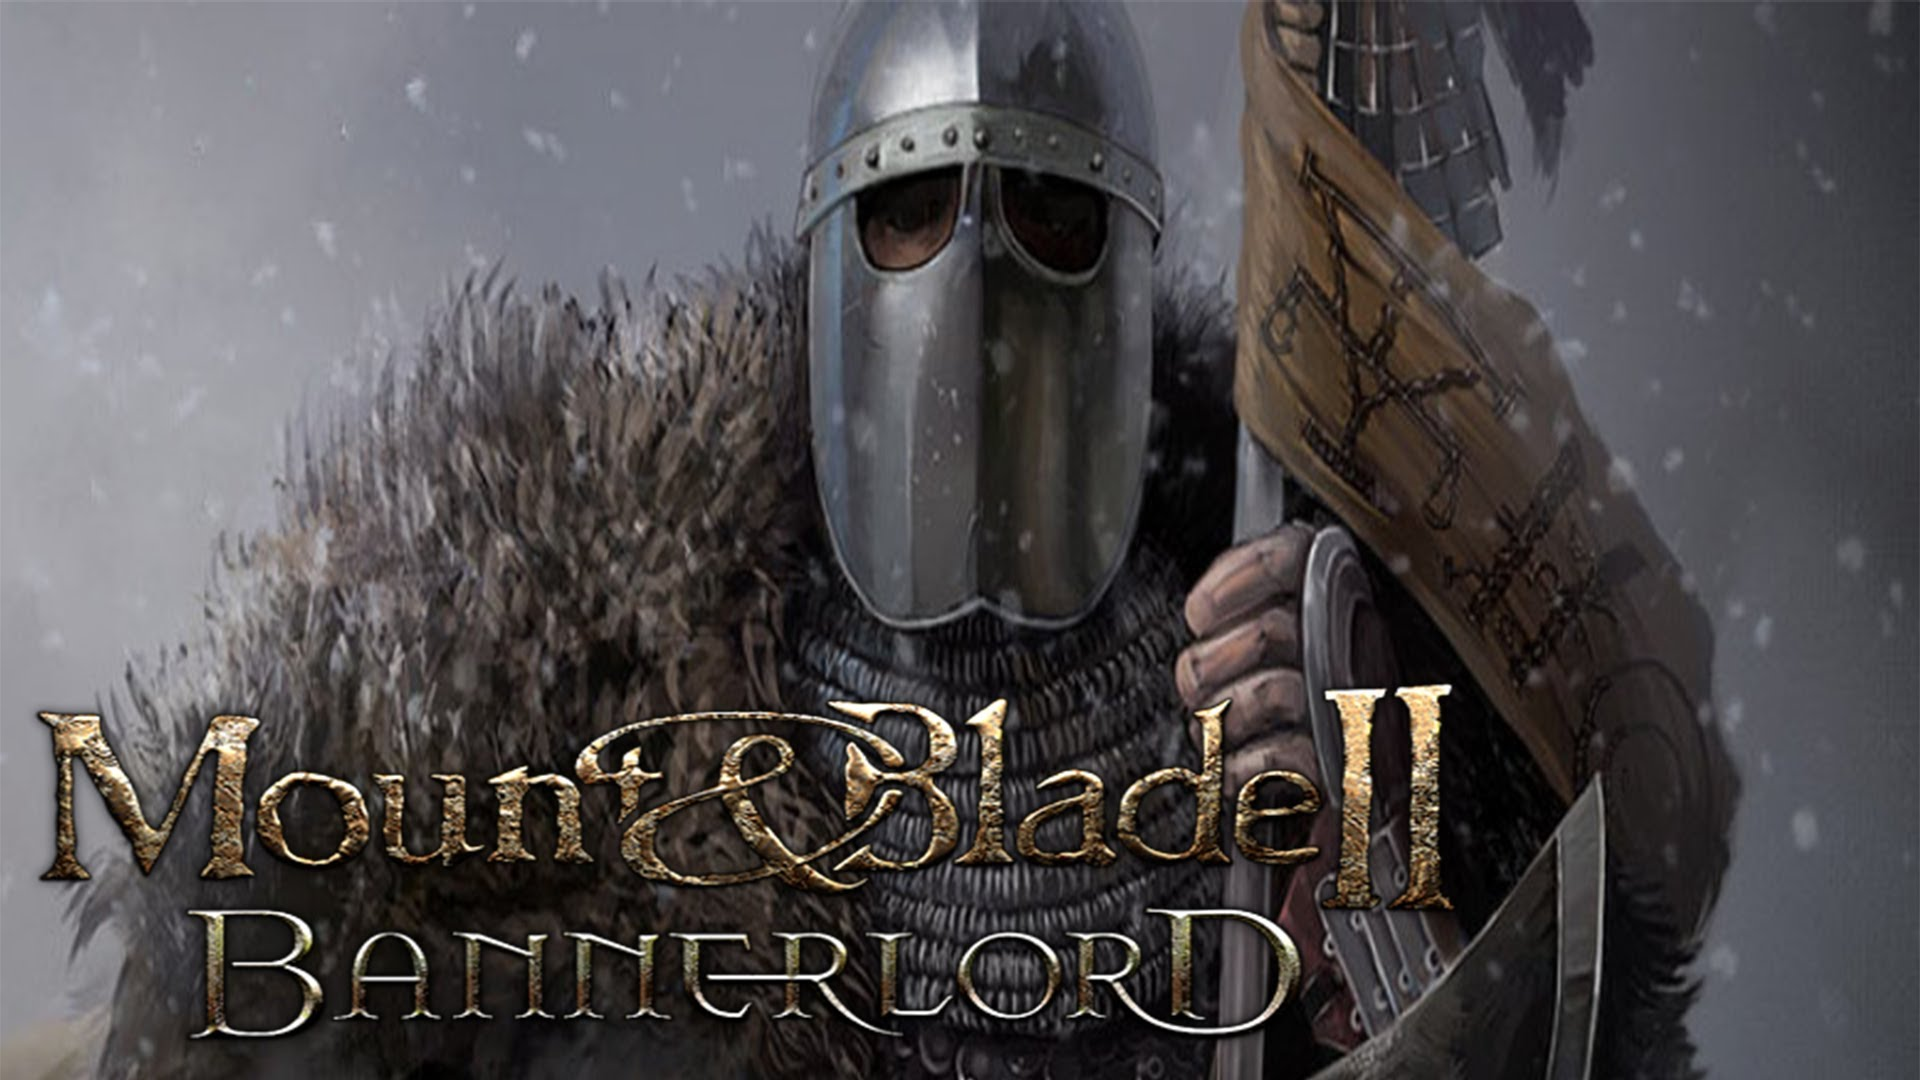 Mount & Blade II: Bannerlord telecharger gratuit de PC et Torrent